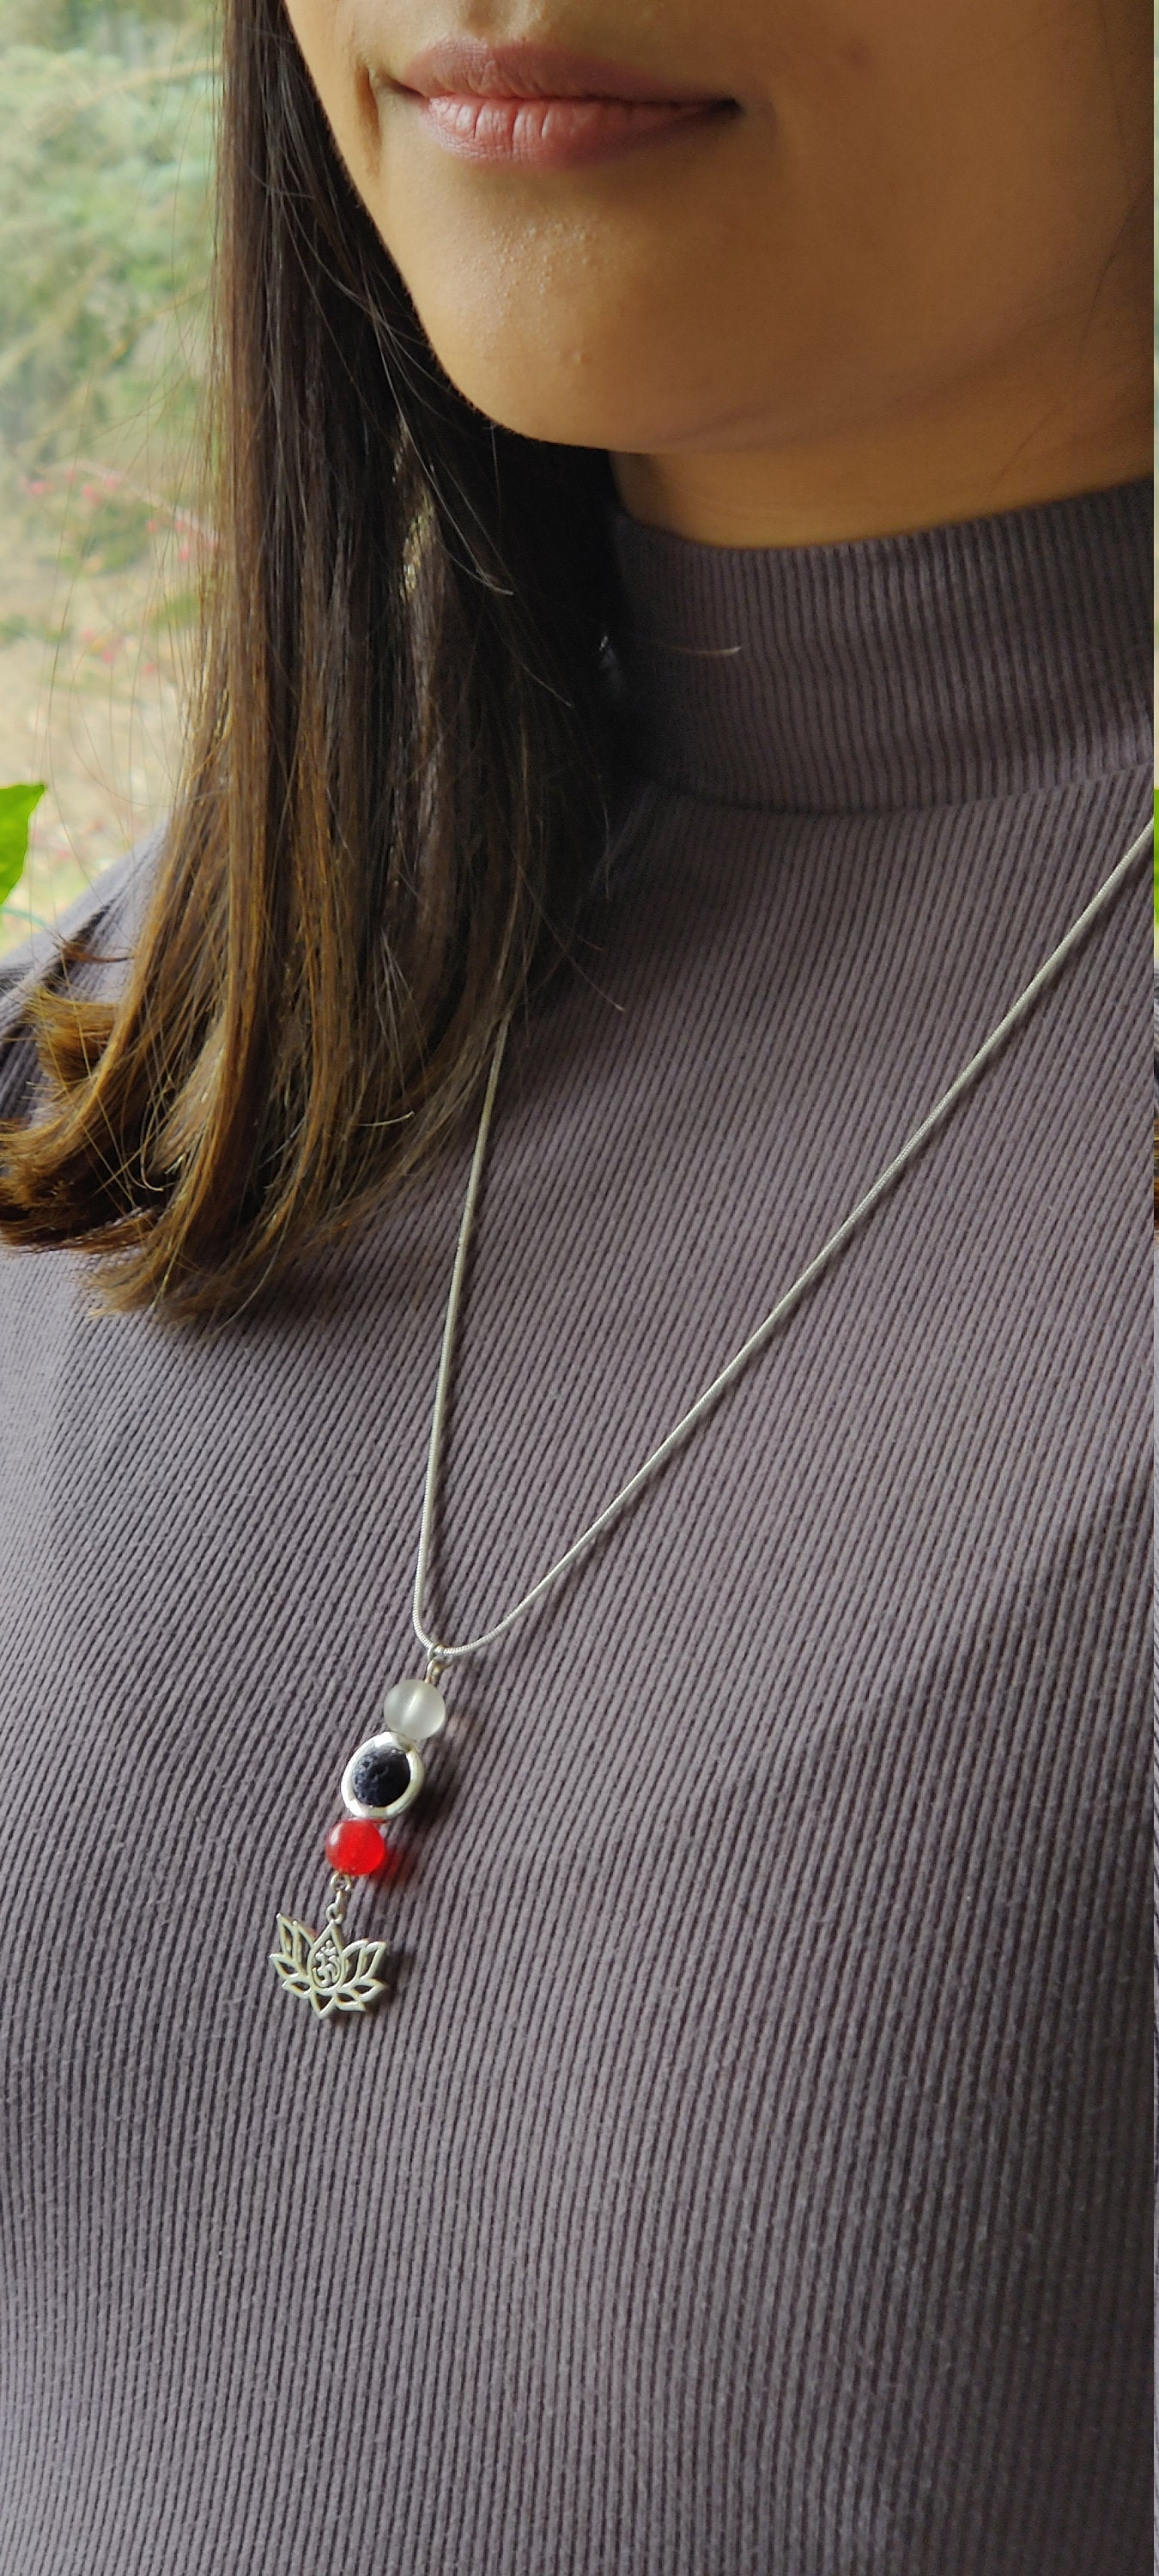 Healing crystals, Chakra jewelry,  Gift for her, Minimalist necklace,  Carnelian, Lava bead, 18 inch Silver plated chain, Lotus Charm